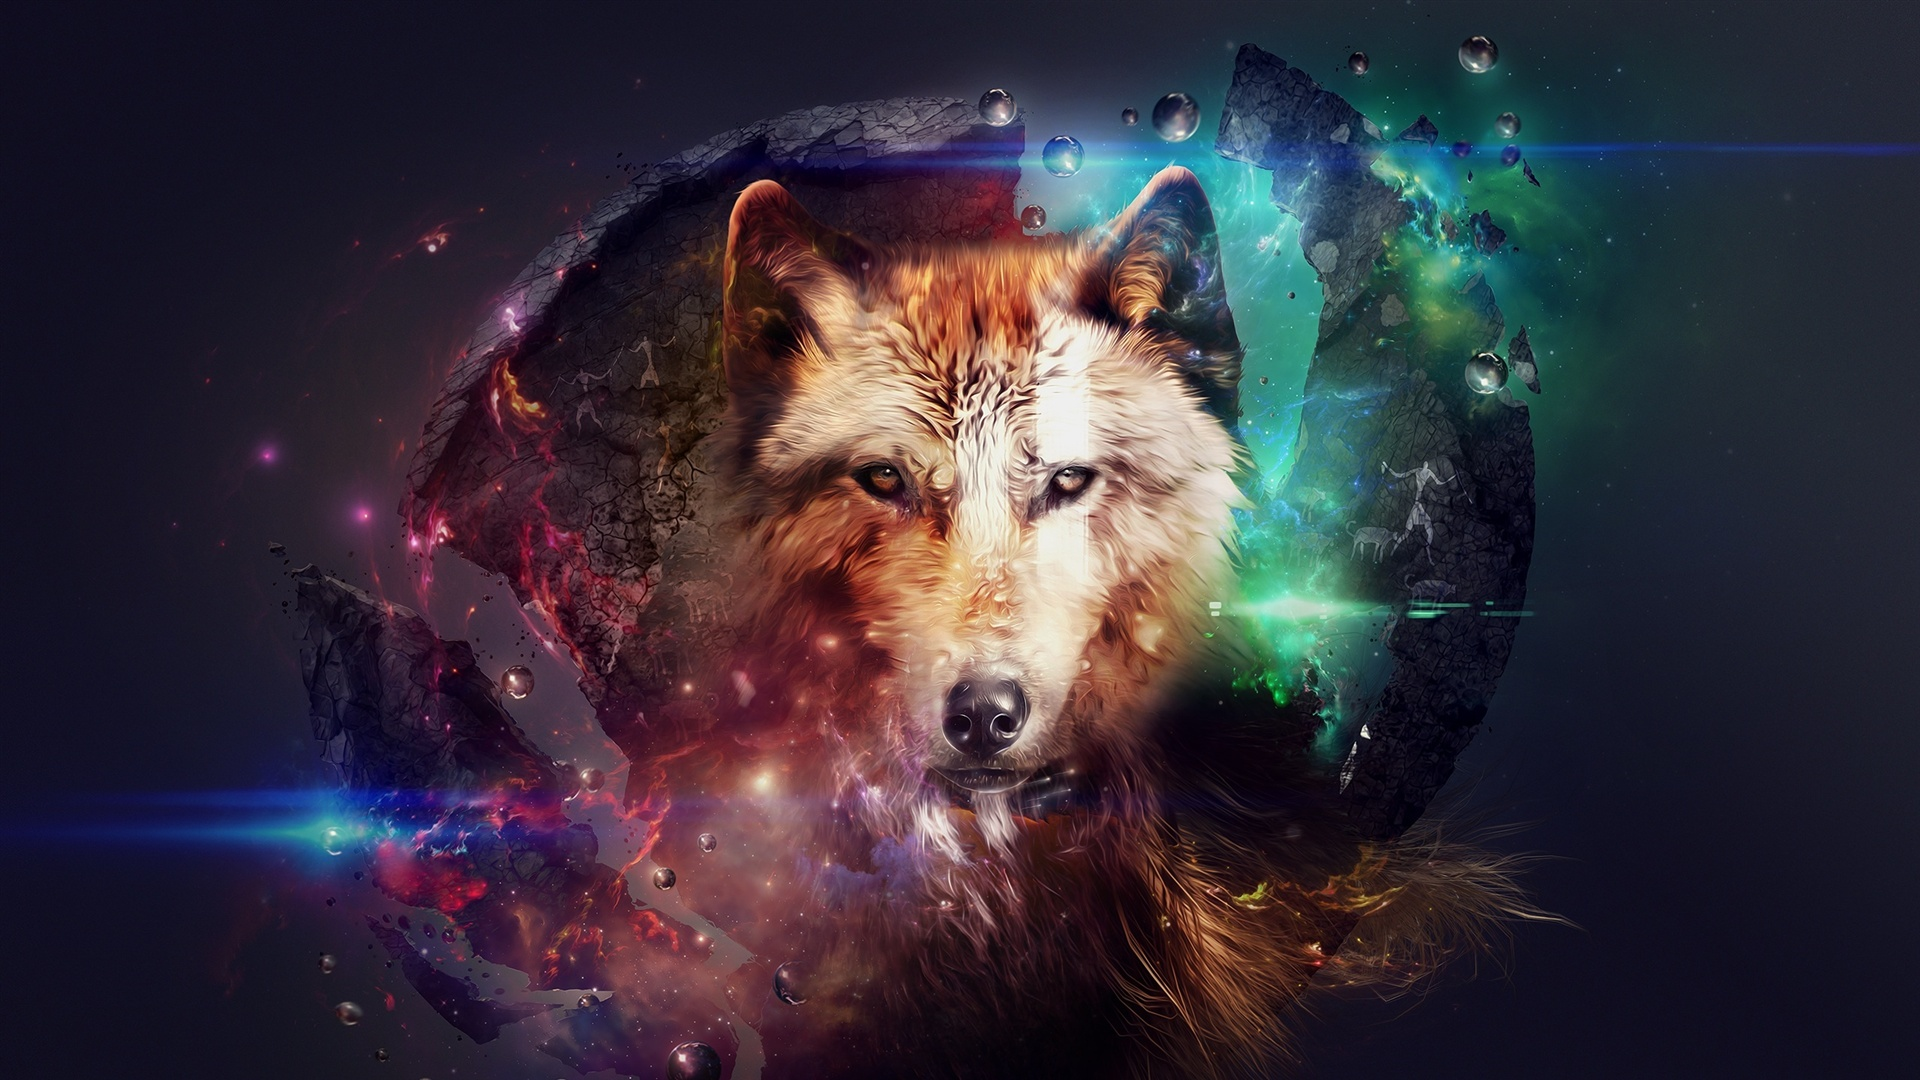 Colorful animals wallpaper